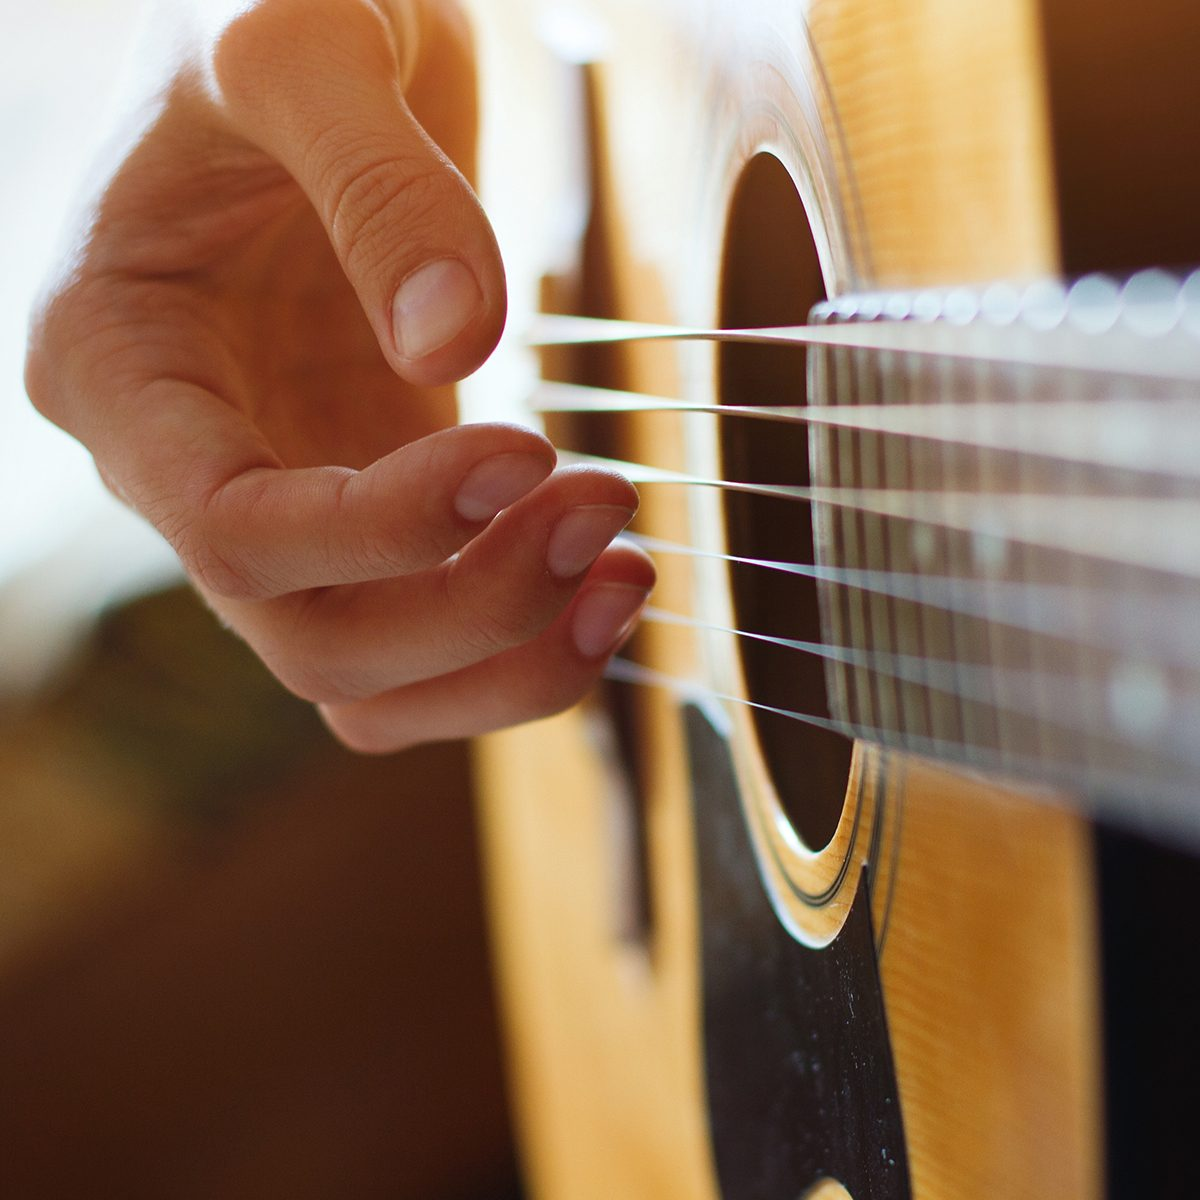 play acoustic guitar, close up of the hands